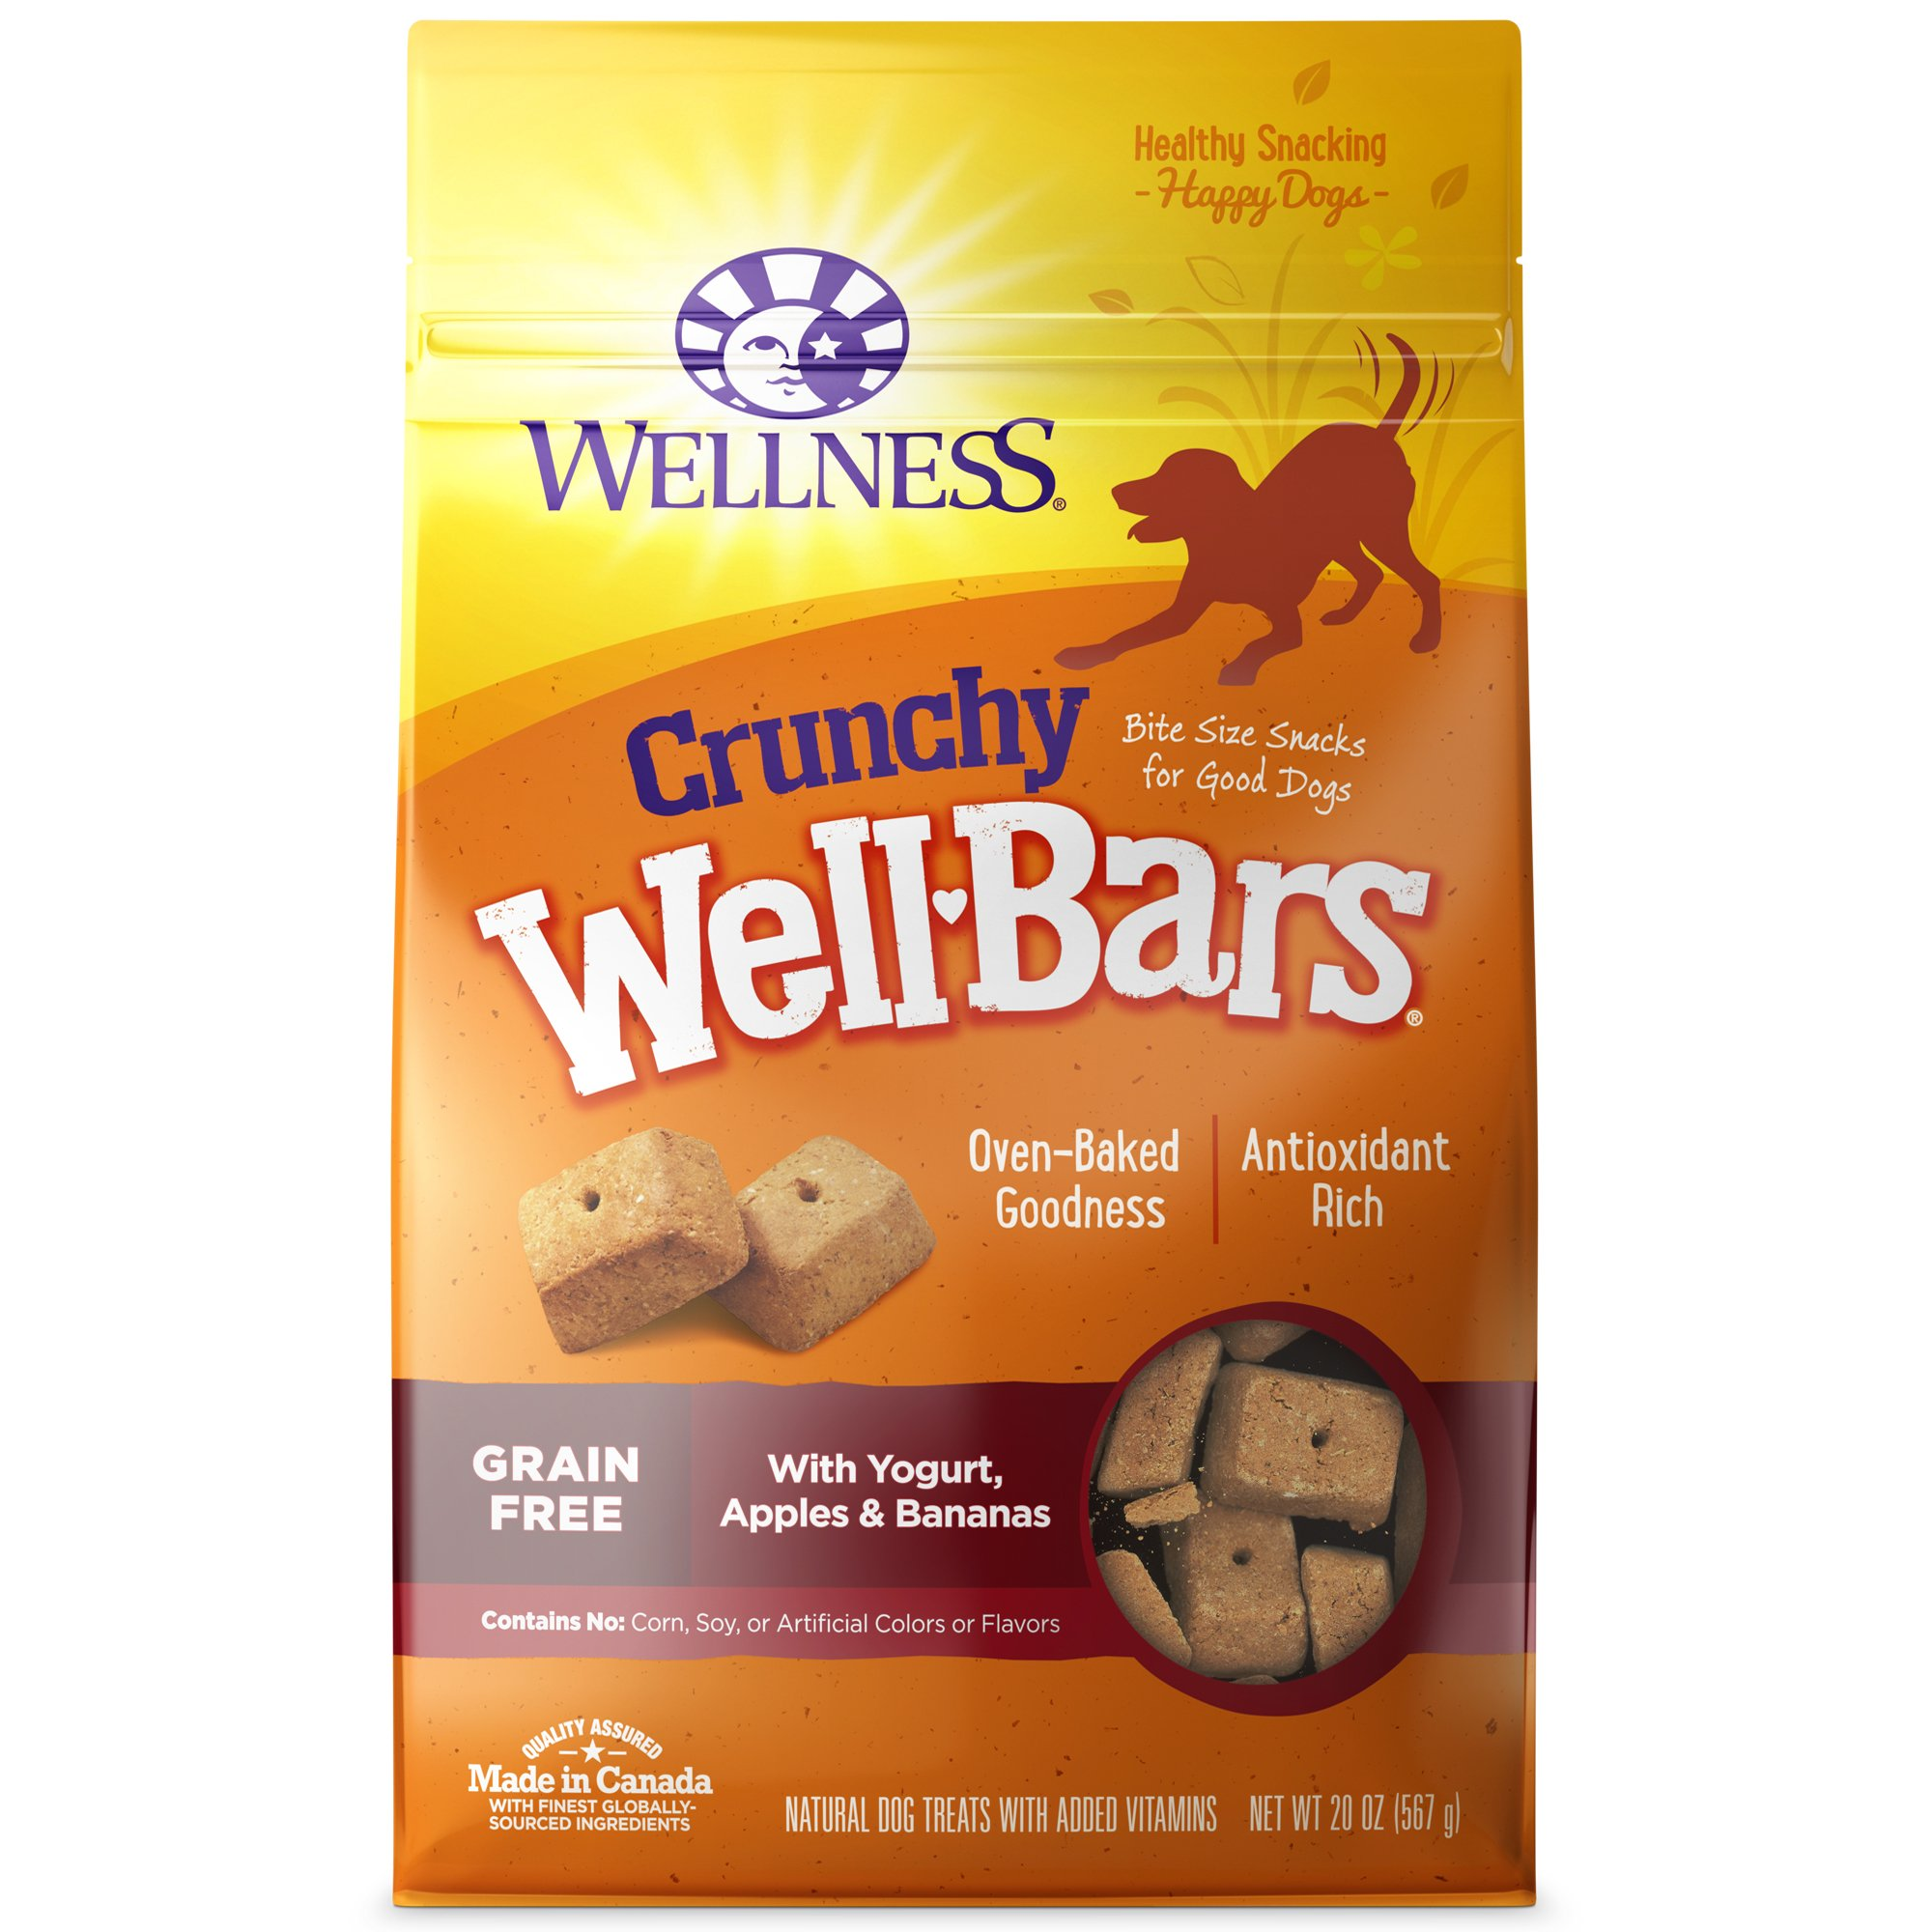 Wellness Wellbars Yogurt, Apples & Bananas Crunchy Dog Treats